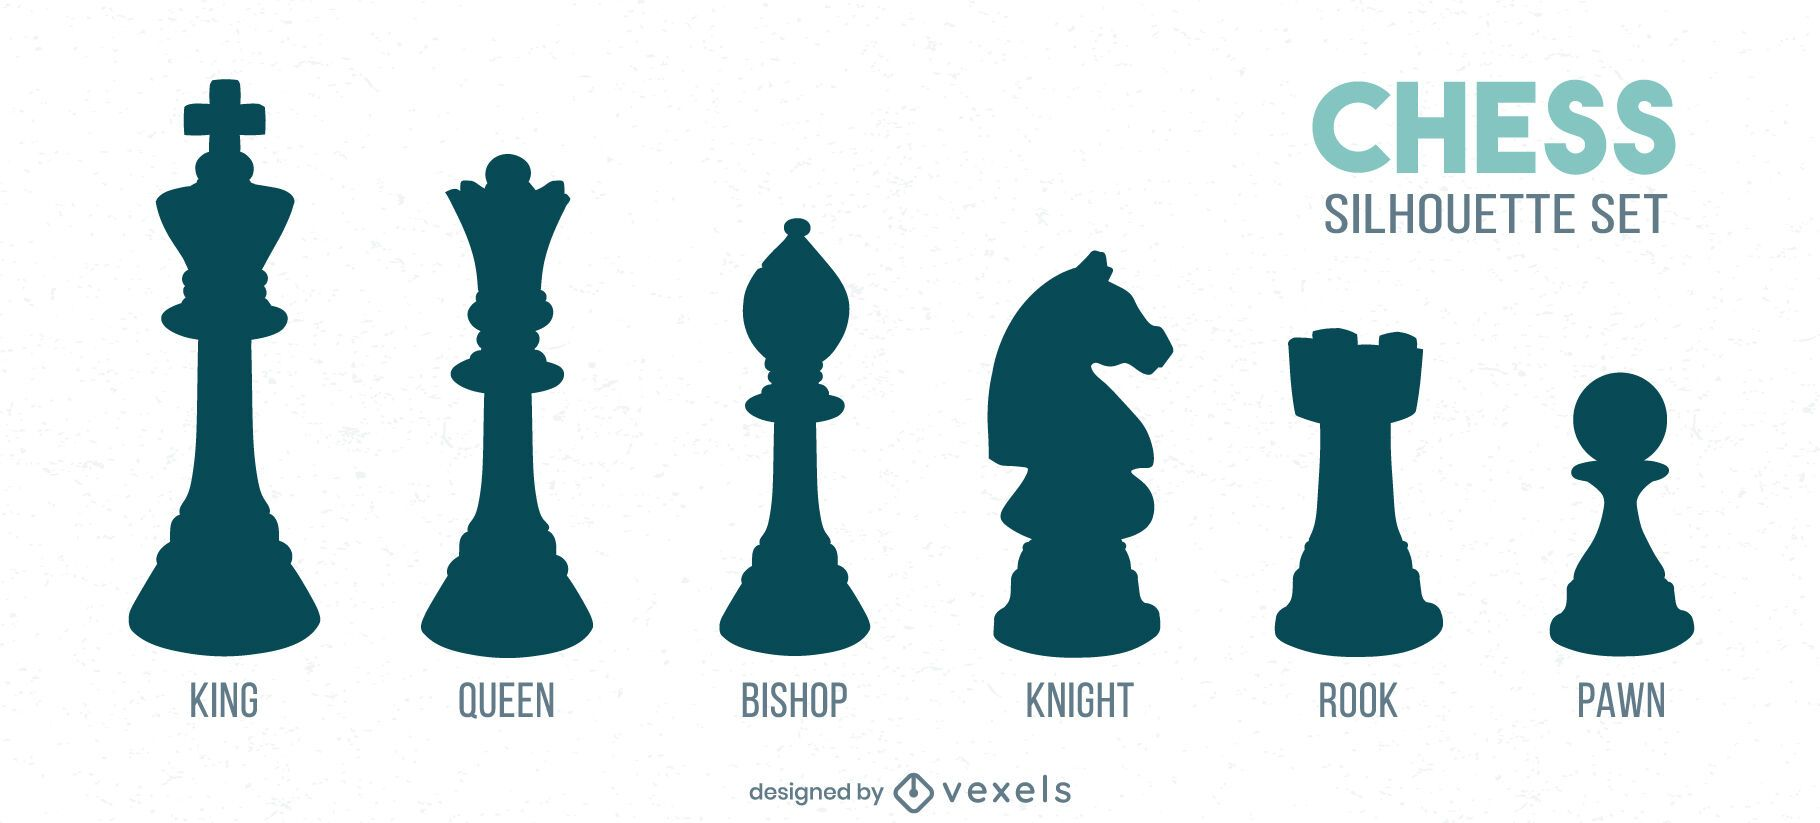 Chess pieces detailed silhouettes set